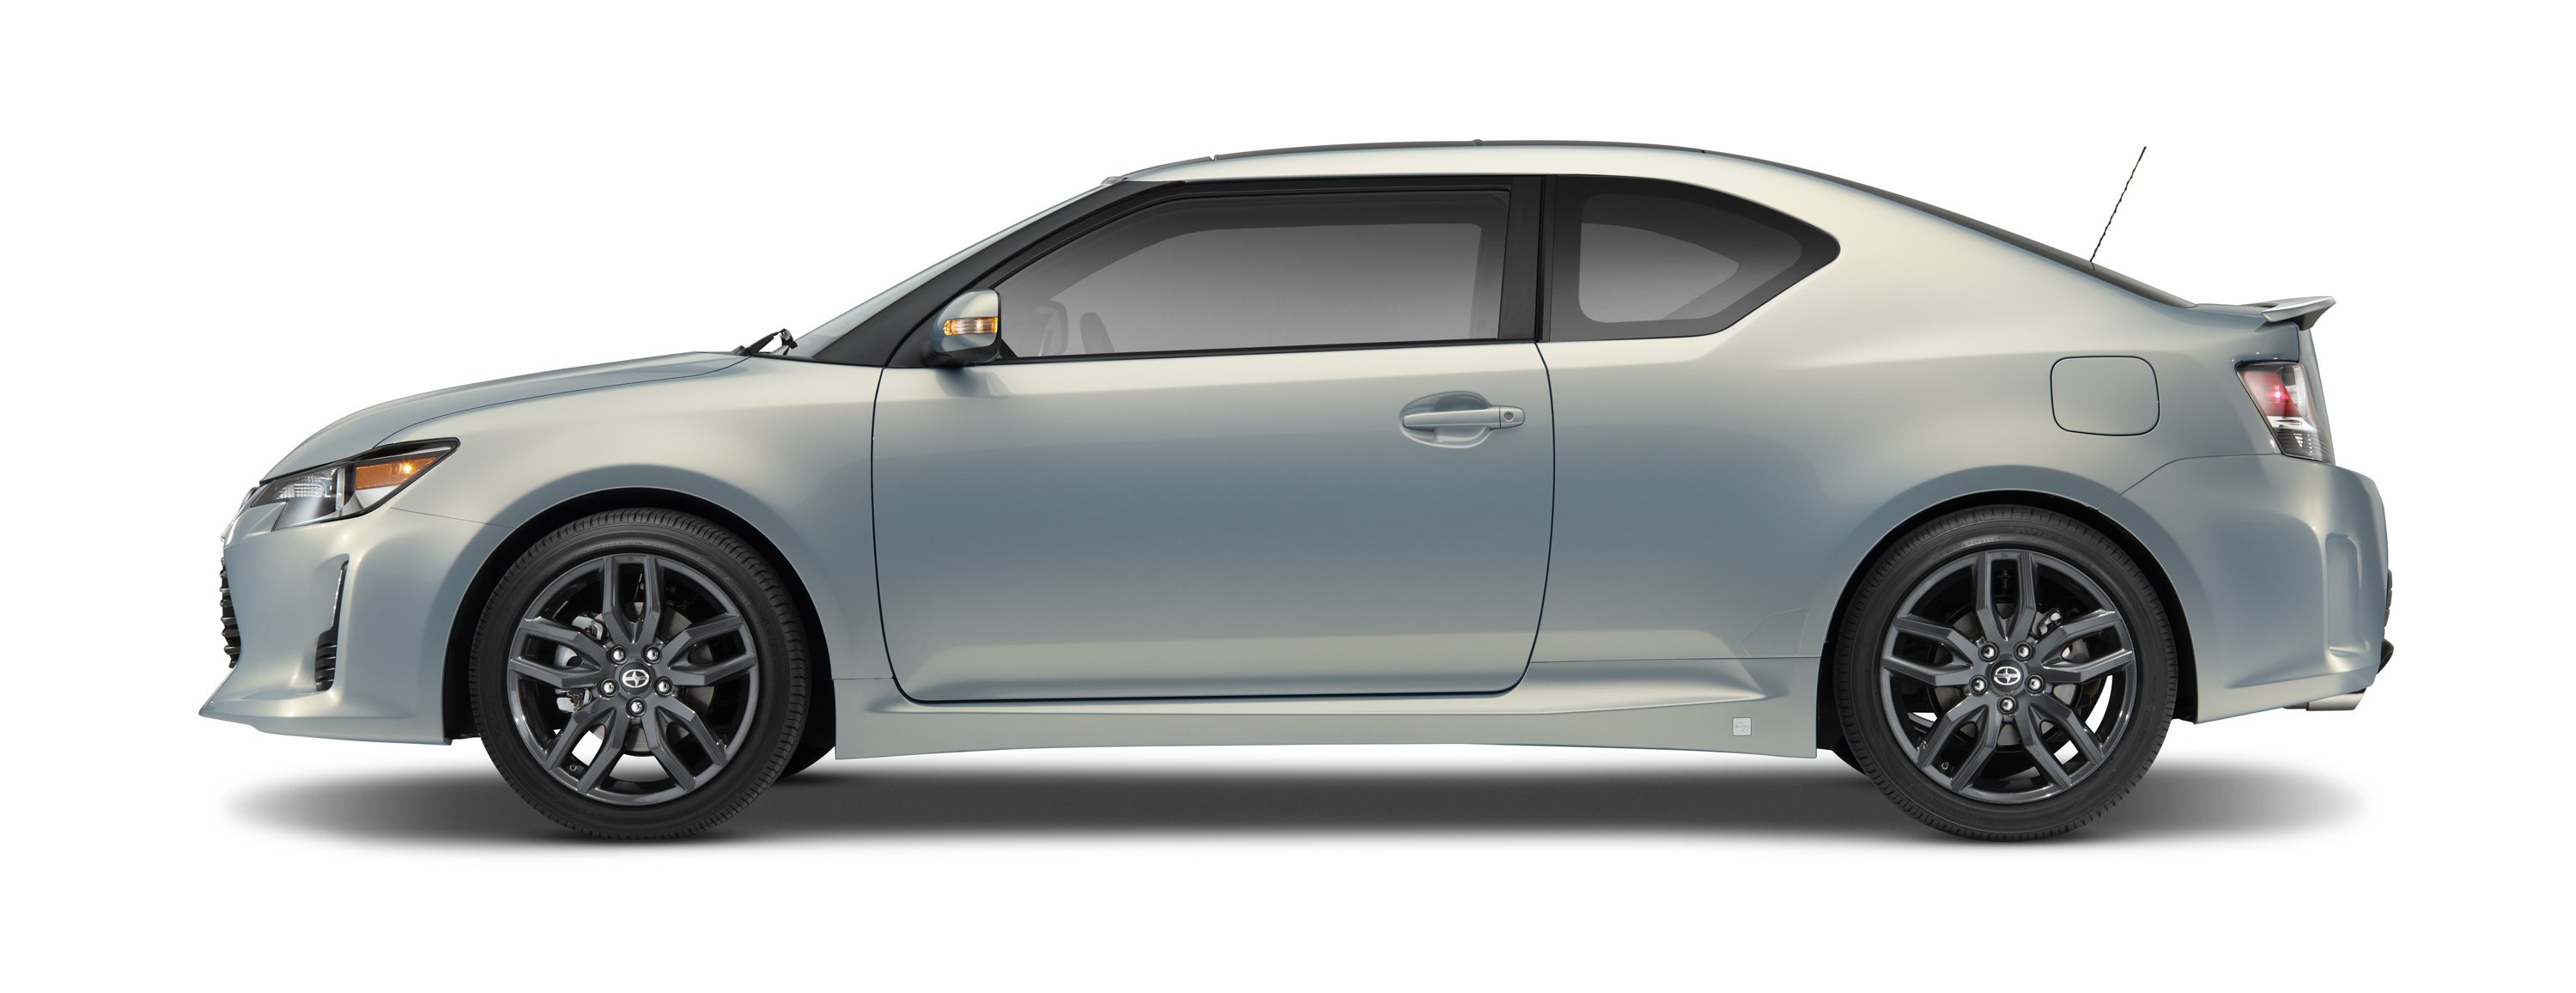 2014 - 2015 Scion TC Sports Coupe | Top Speed